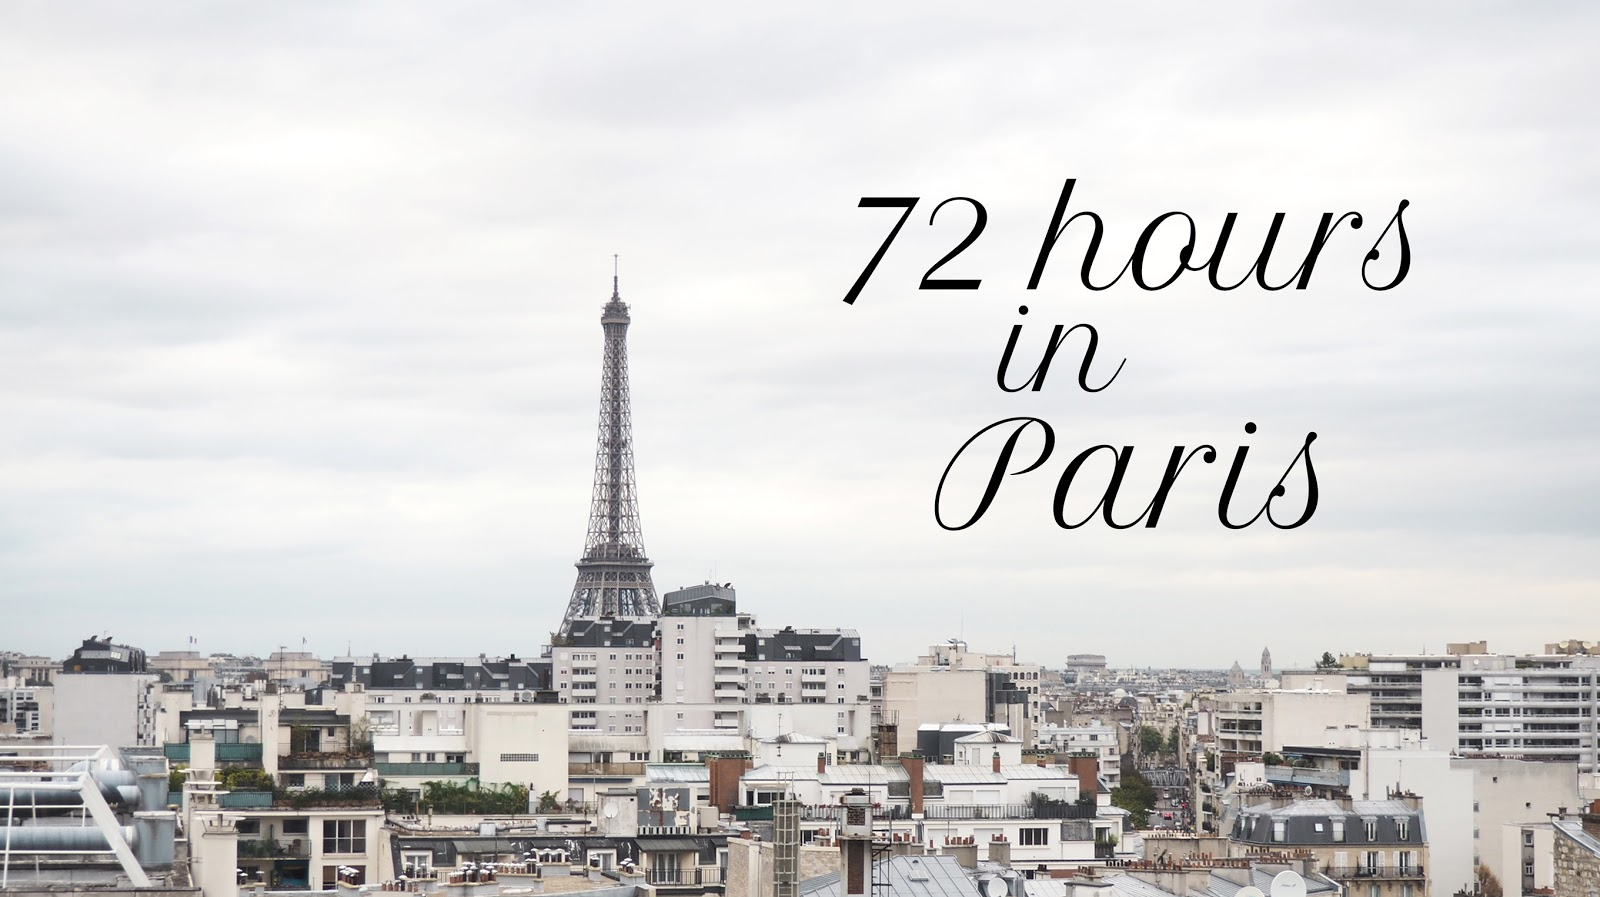 THE VIDEO: 72 HOURS IN PARIS